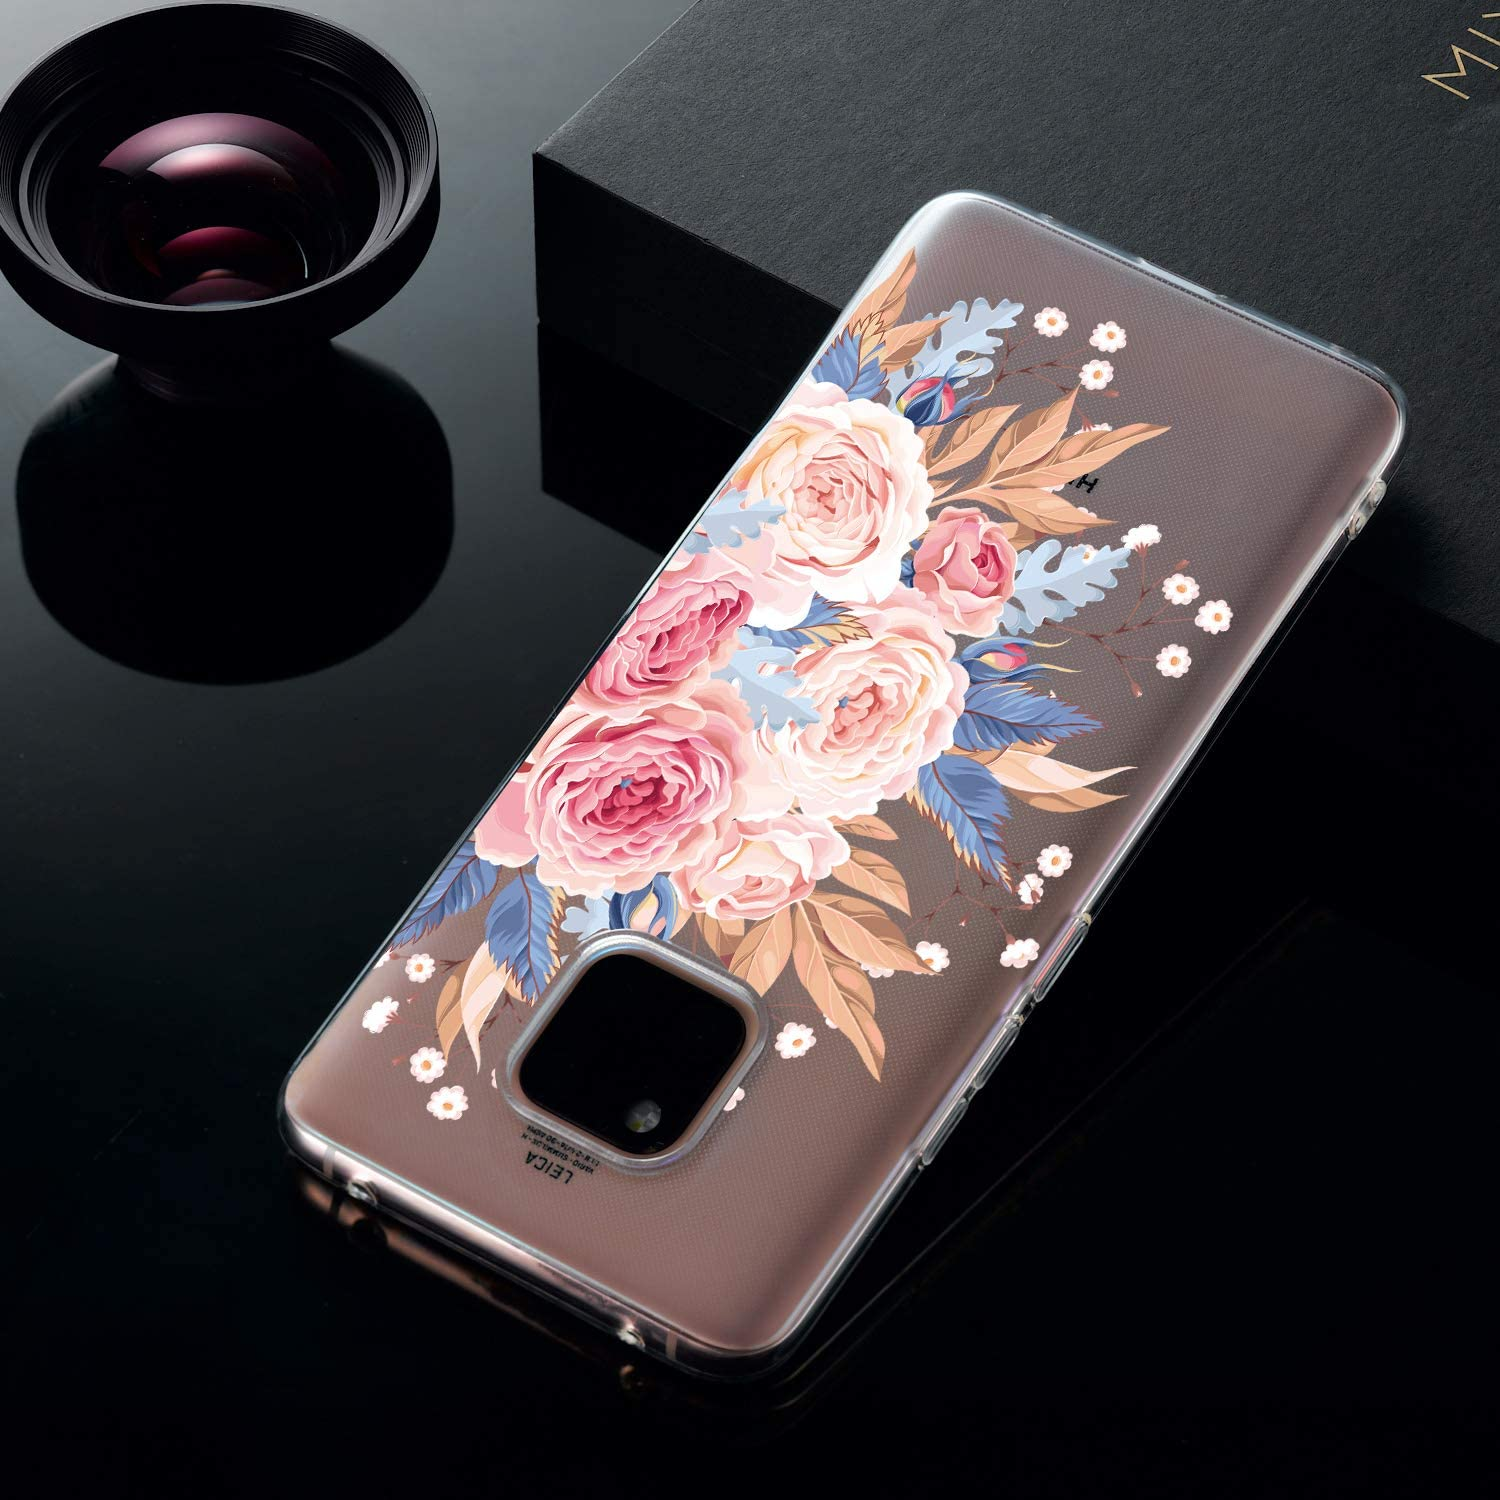 Lovely Fowers Amocase Cute Floral Case with 2 in 1 Stylus for Huawei Mate 20 Pro,Stylish Ultra Thin Sweet Flowers Soft Rubber Silicone TPU Shockproof Anti-Scratch Flexible Clear Case